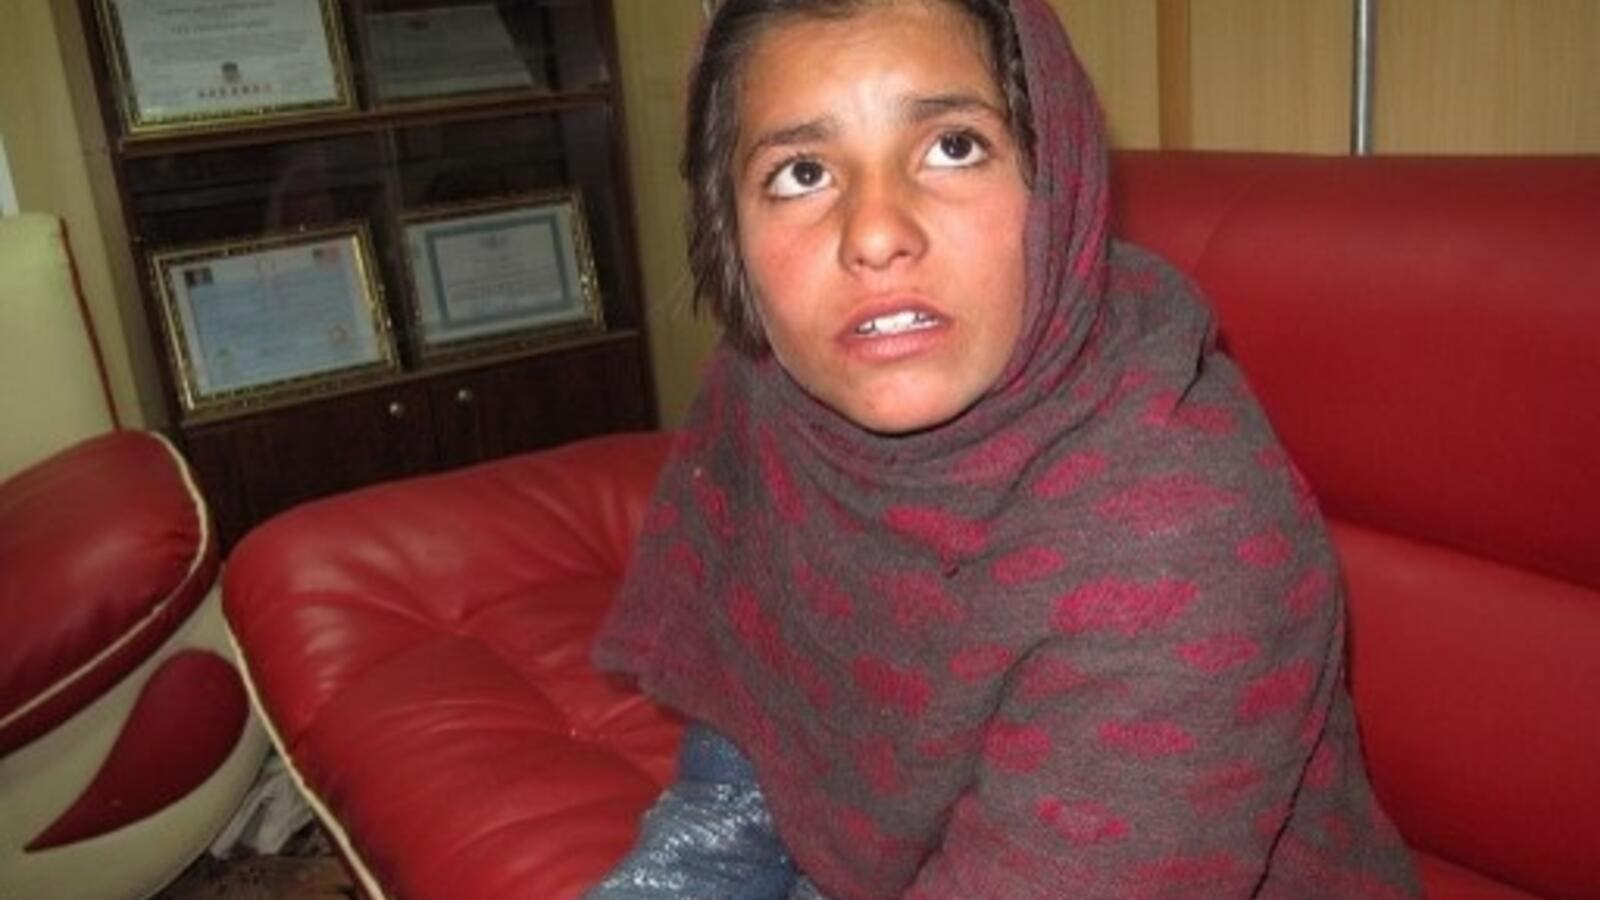 This is the 10-year-old-girl who was rescued by police in Khan Nasheen (Noor Mohammad/AFP)